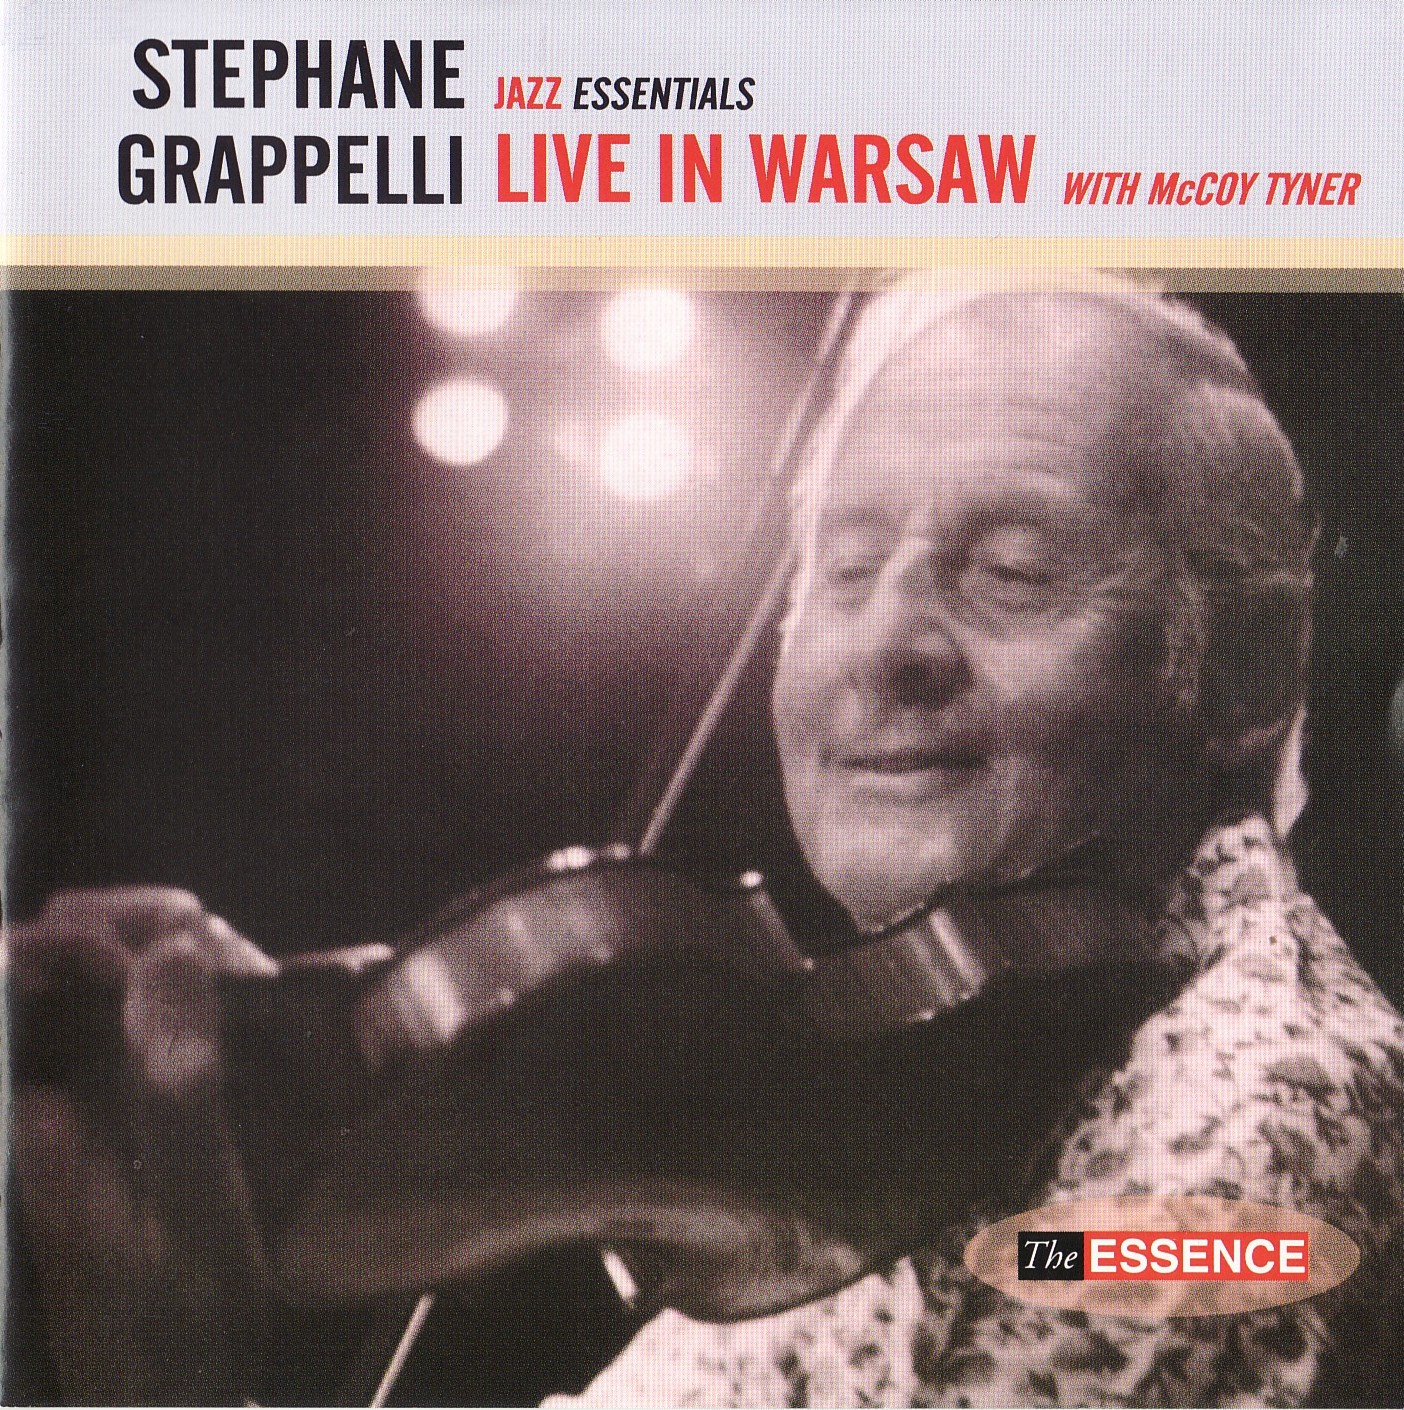 Live In Warsaw - Stephanie Grappelli - McCoy Tyner